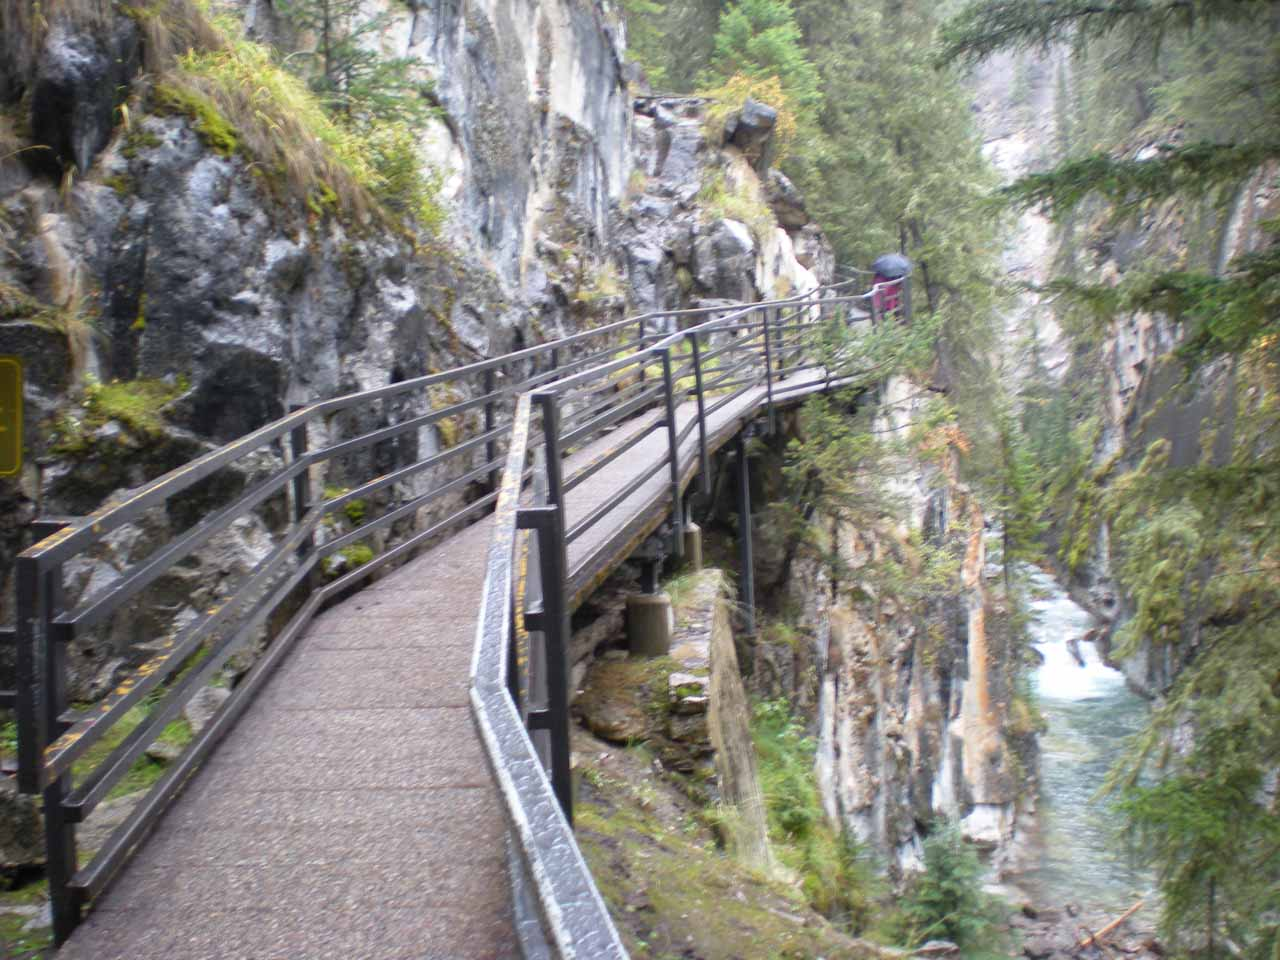 The catwalk was often perched high above the base of the gorge